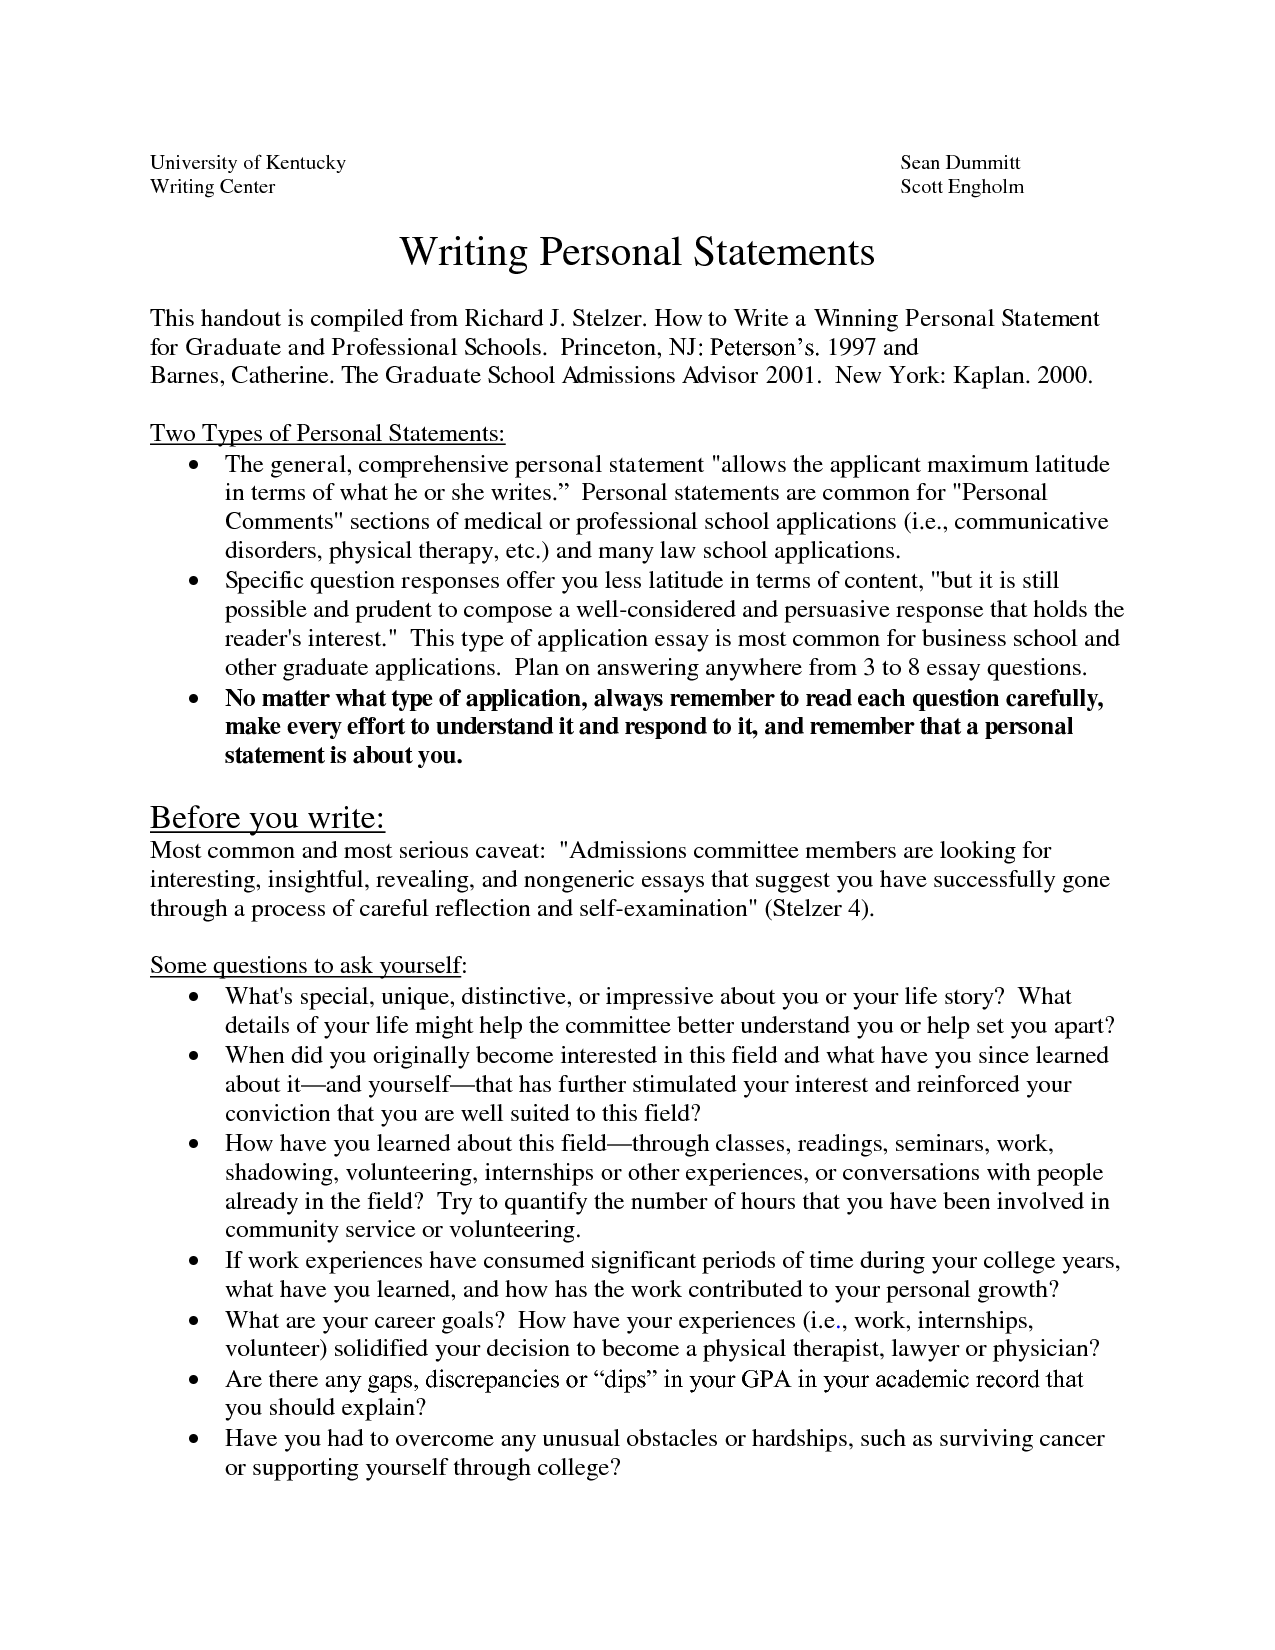 Mba admission essay writers review